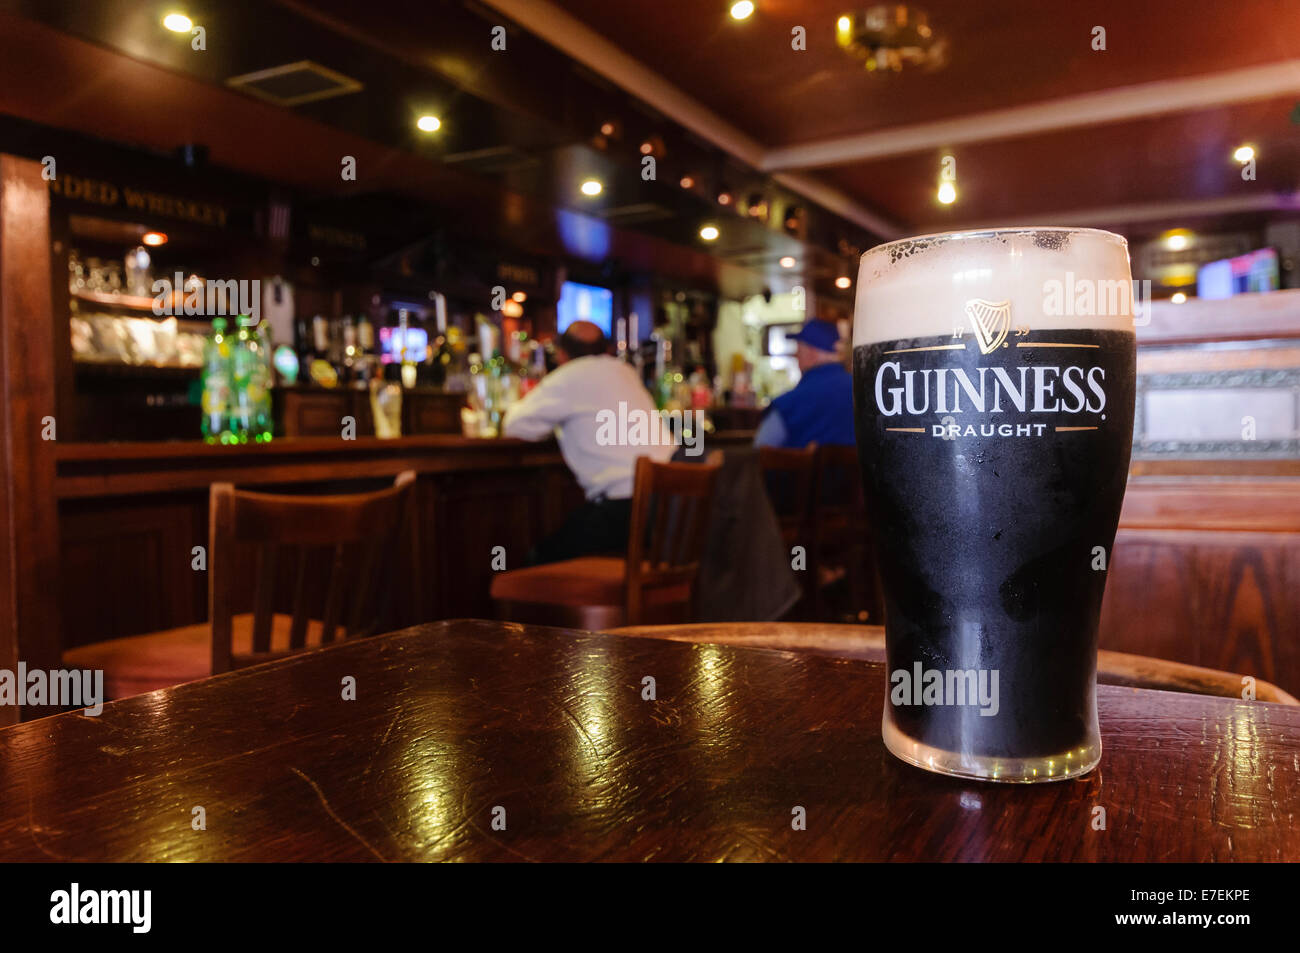 pint of guinness in a traditional irish pub stock photo royalty free image 73466918 alamy. Black Bedroom Furniture Sets. Home Design Ideas